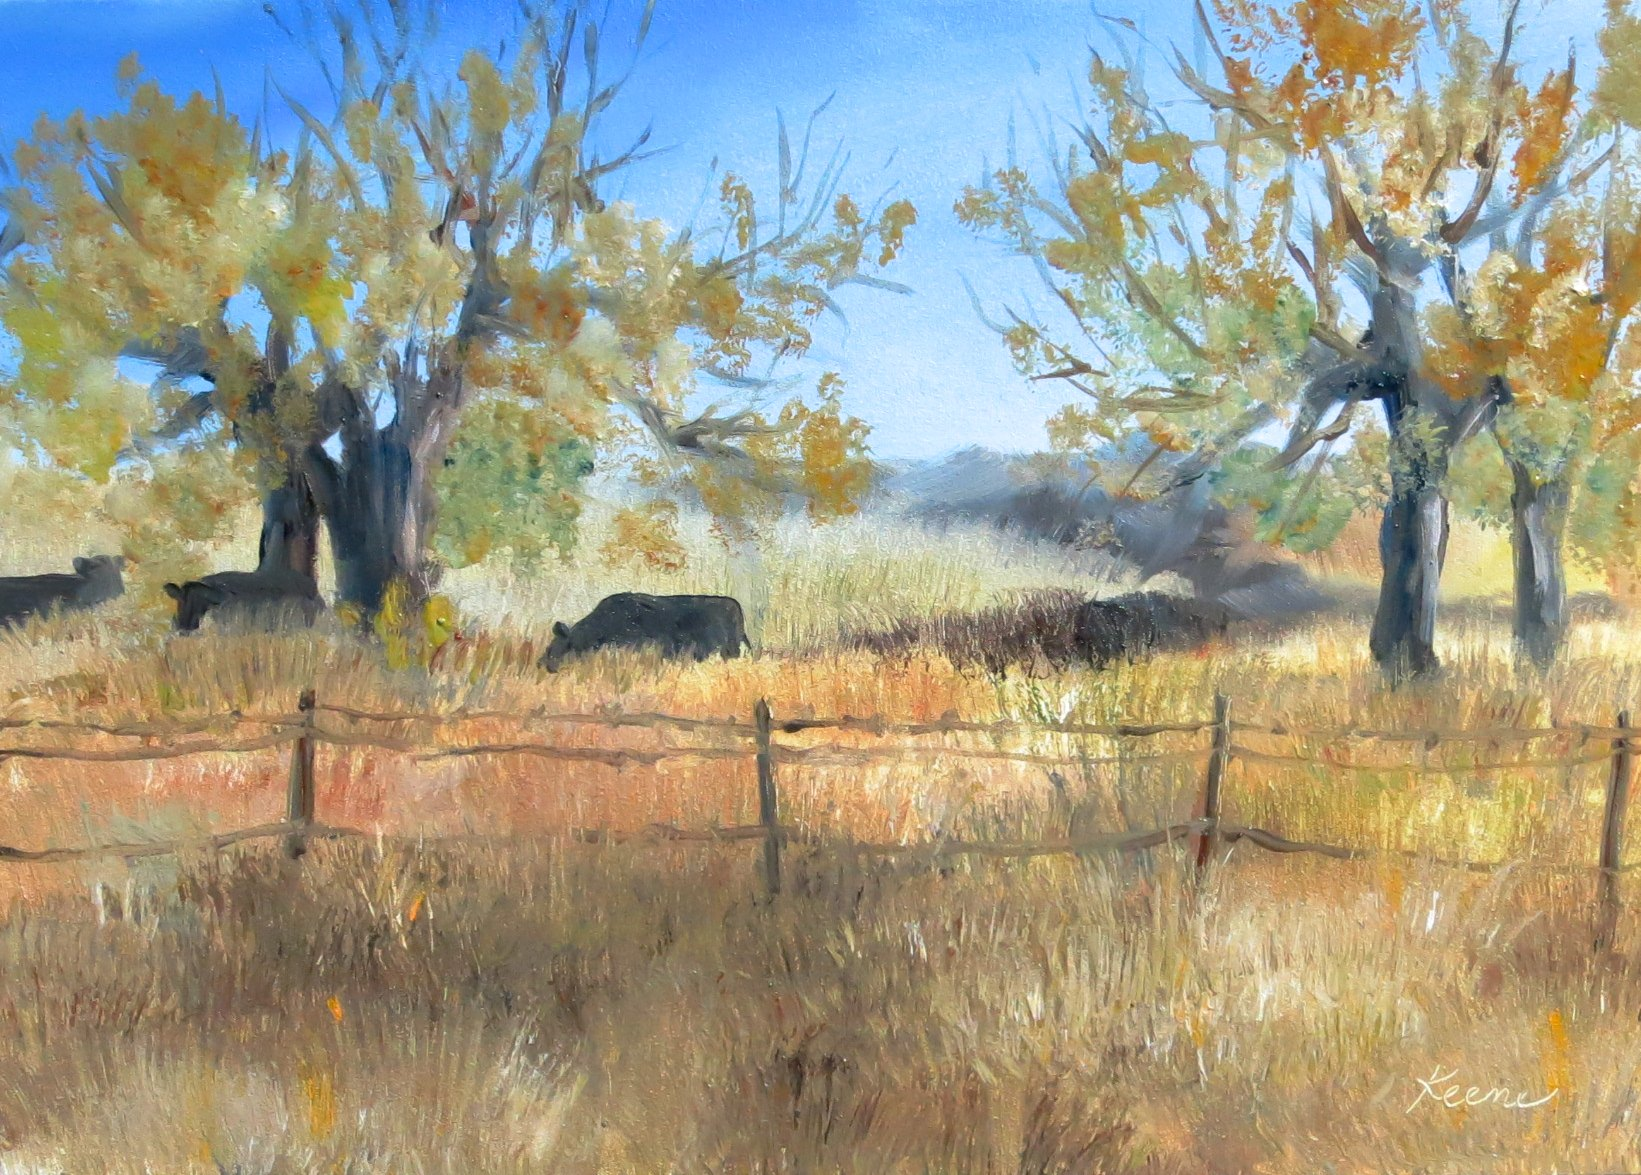 Cattle-scape